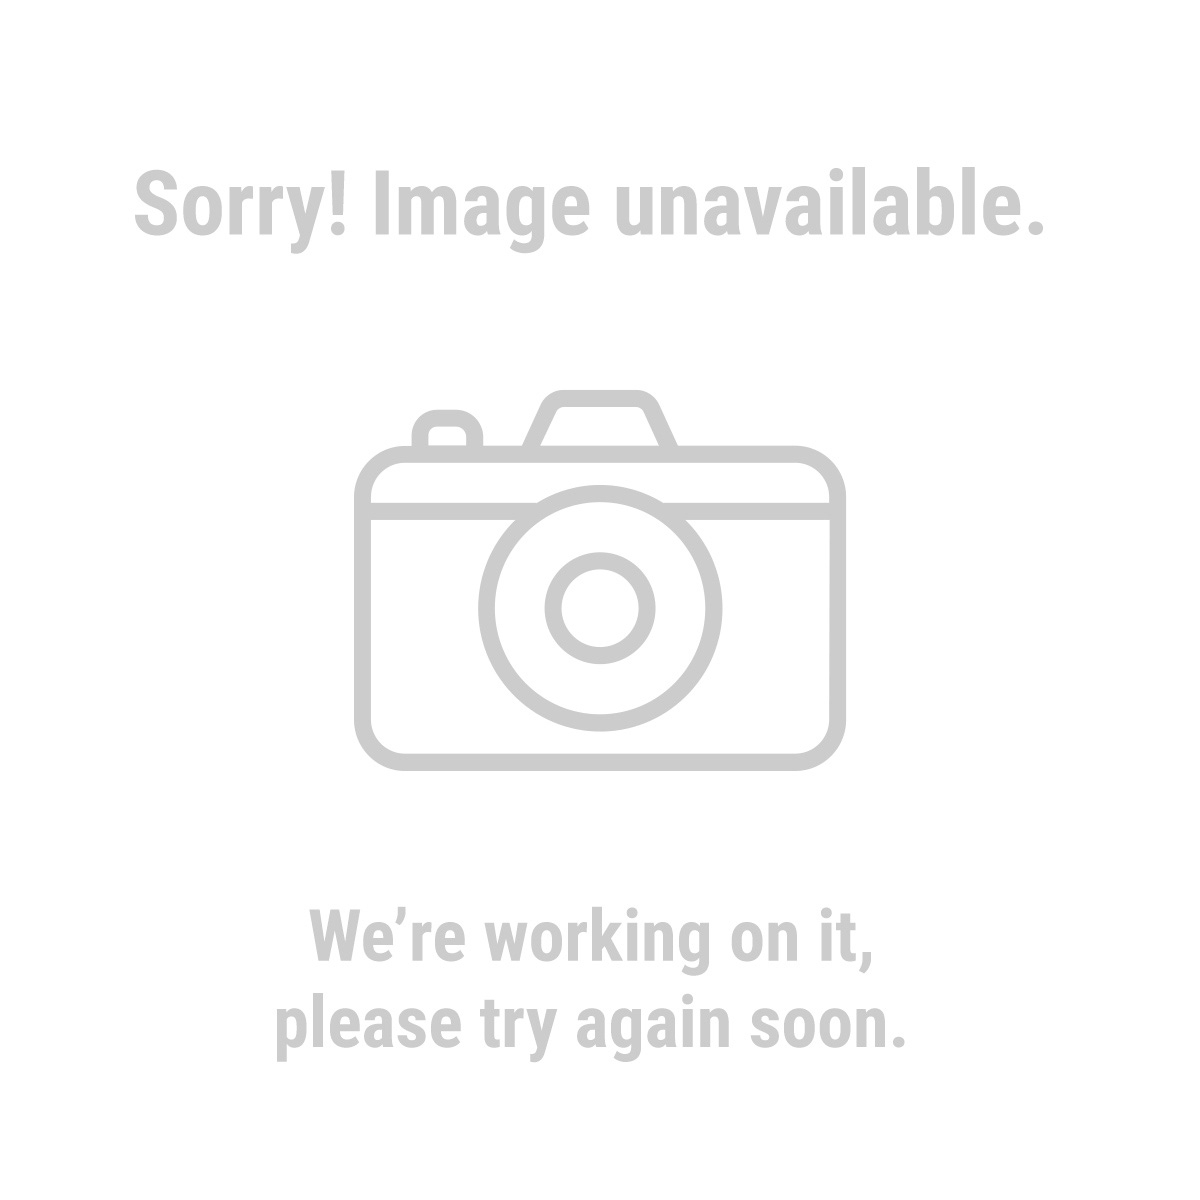 Central Machinery 97181 4 in. x 36 in. Belt / 6 in. Disc Sander